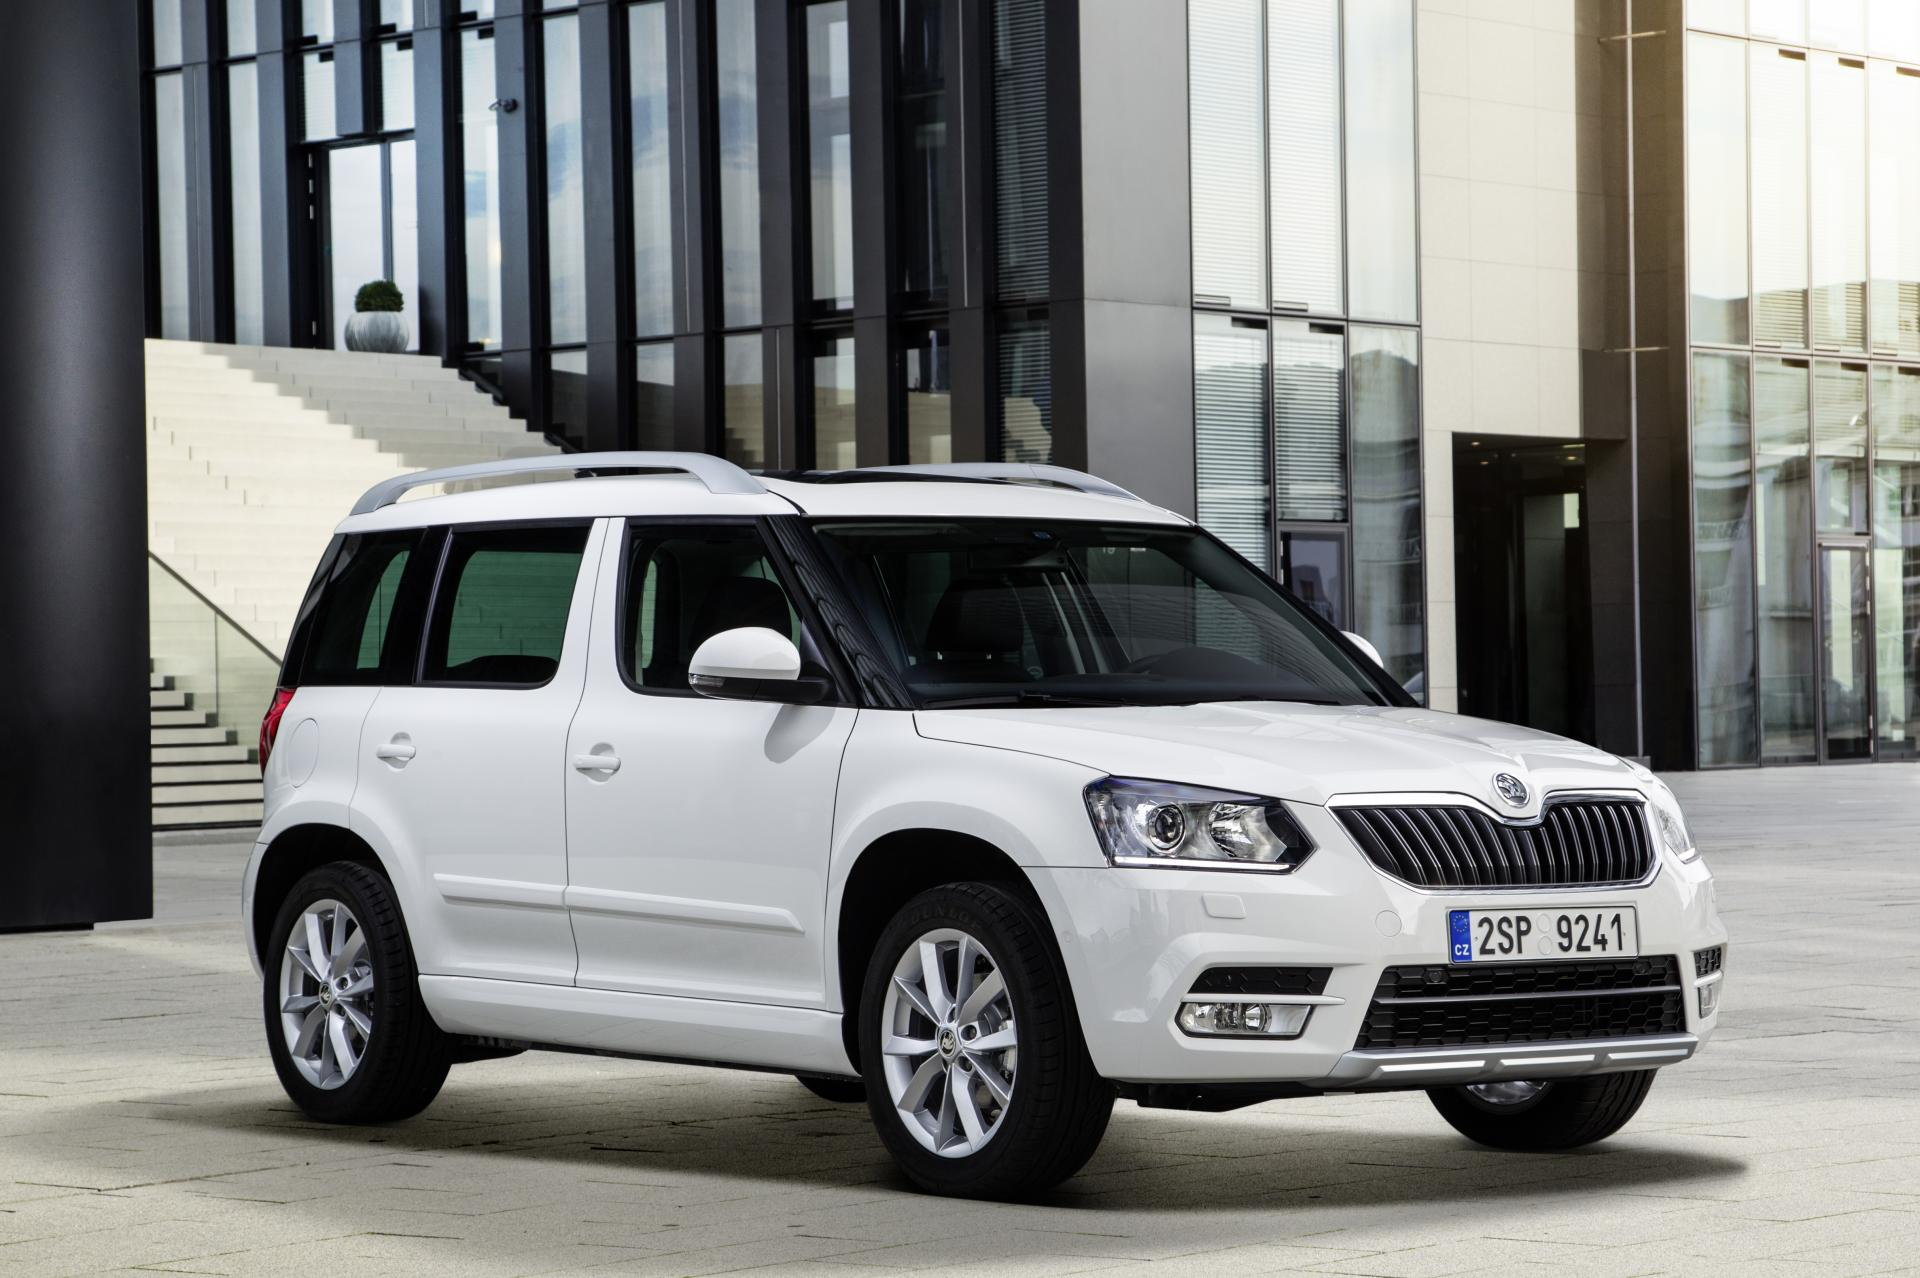 2014 Skoda Yeti News And Information Conceptcarz Com